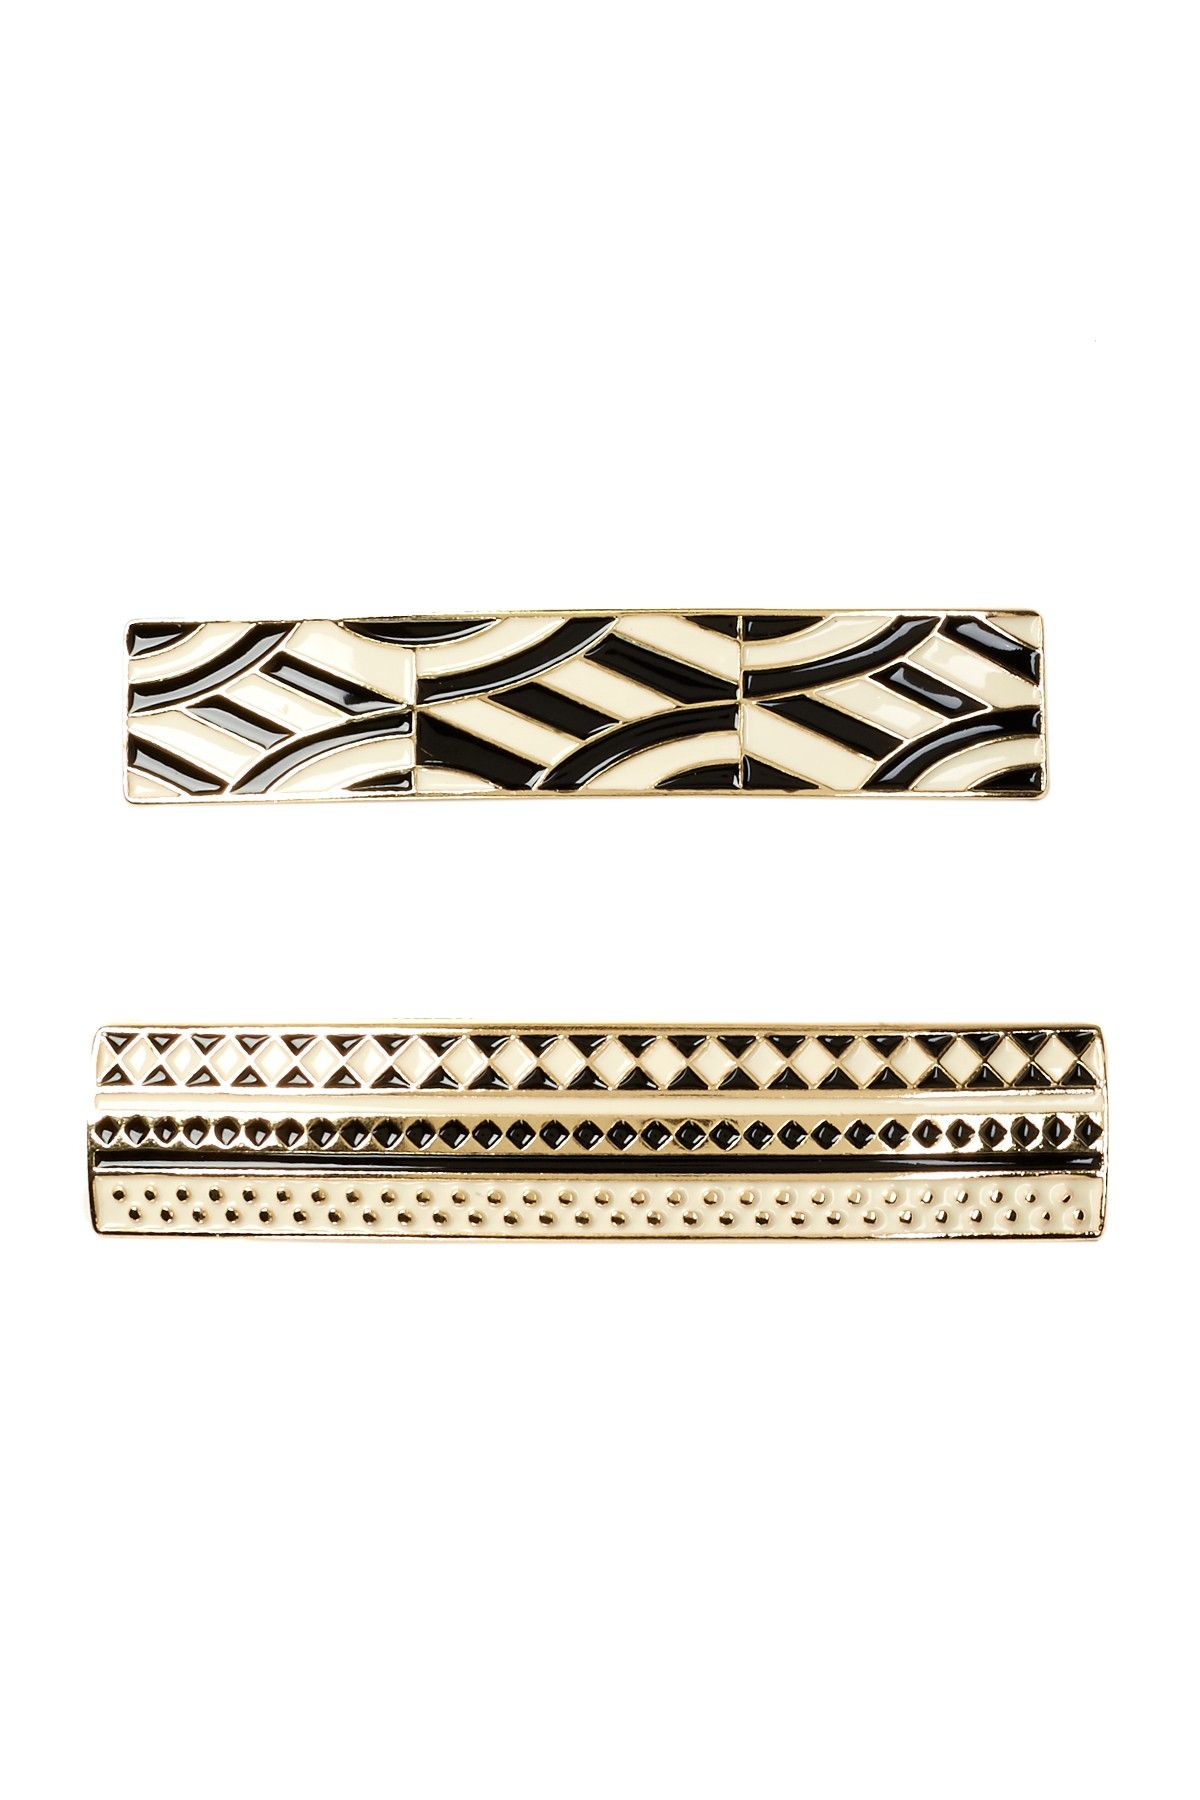 Enameled Barrette - Set of 2 by Berry Jewelry on @nordstrom_rack